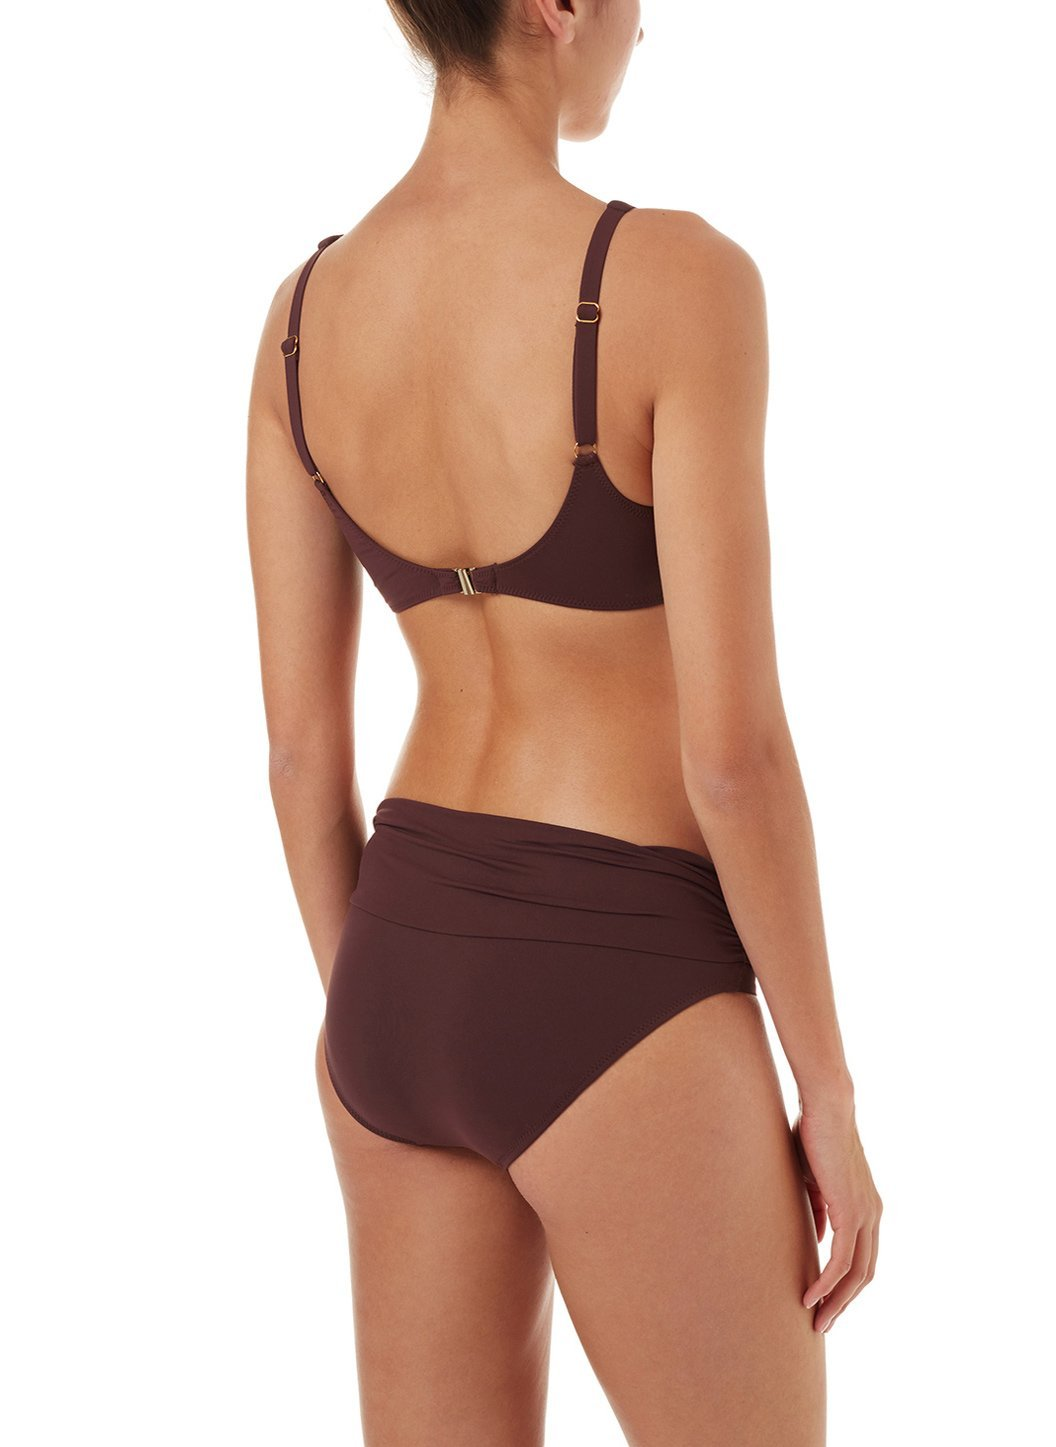 belair walnut overtheshoulder supportive bikini 2019 B